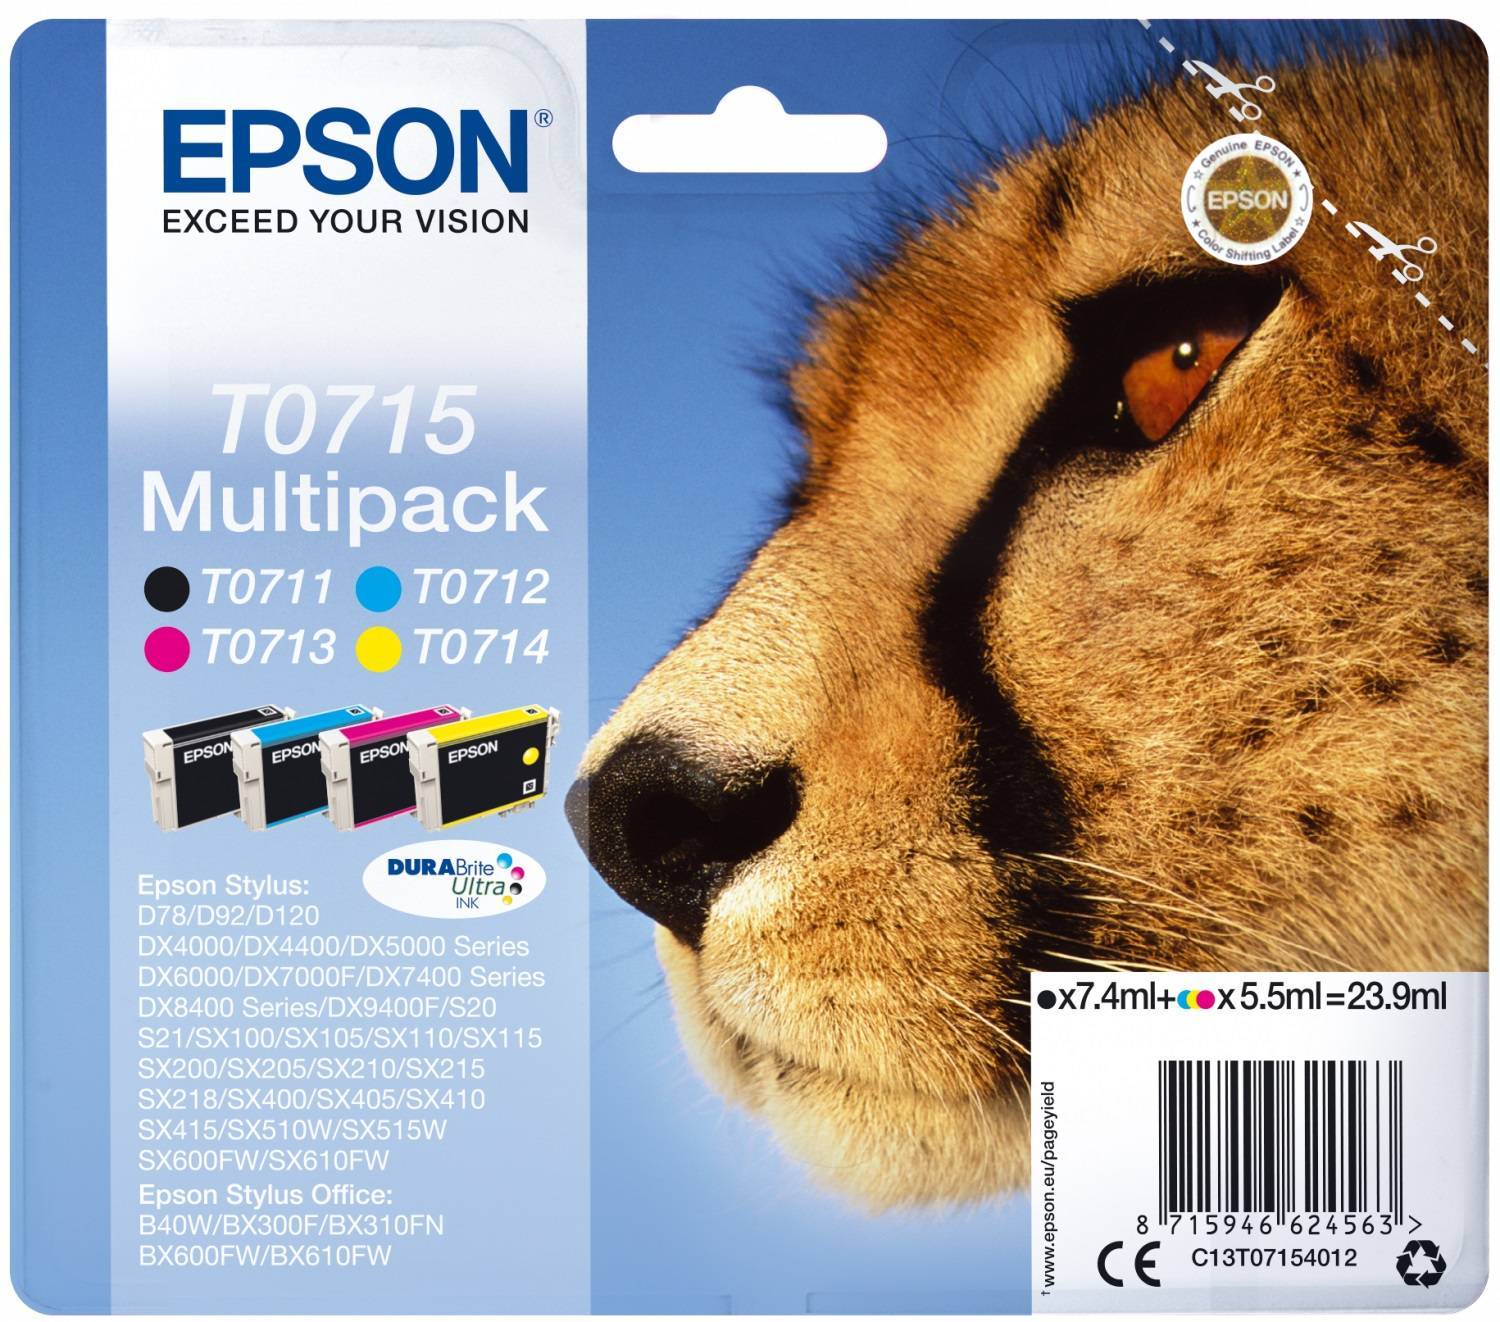 Epson T0715 Black, Cyan, Magenta, Yellow